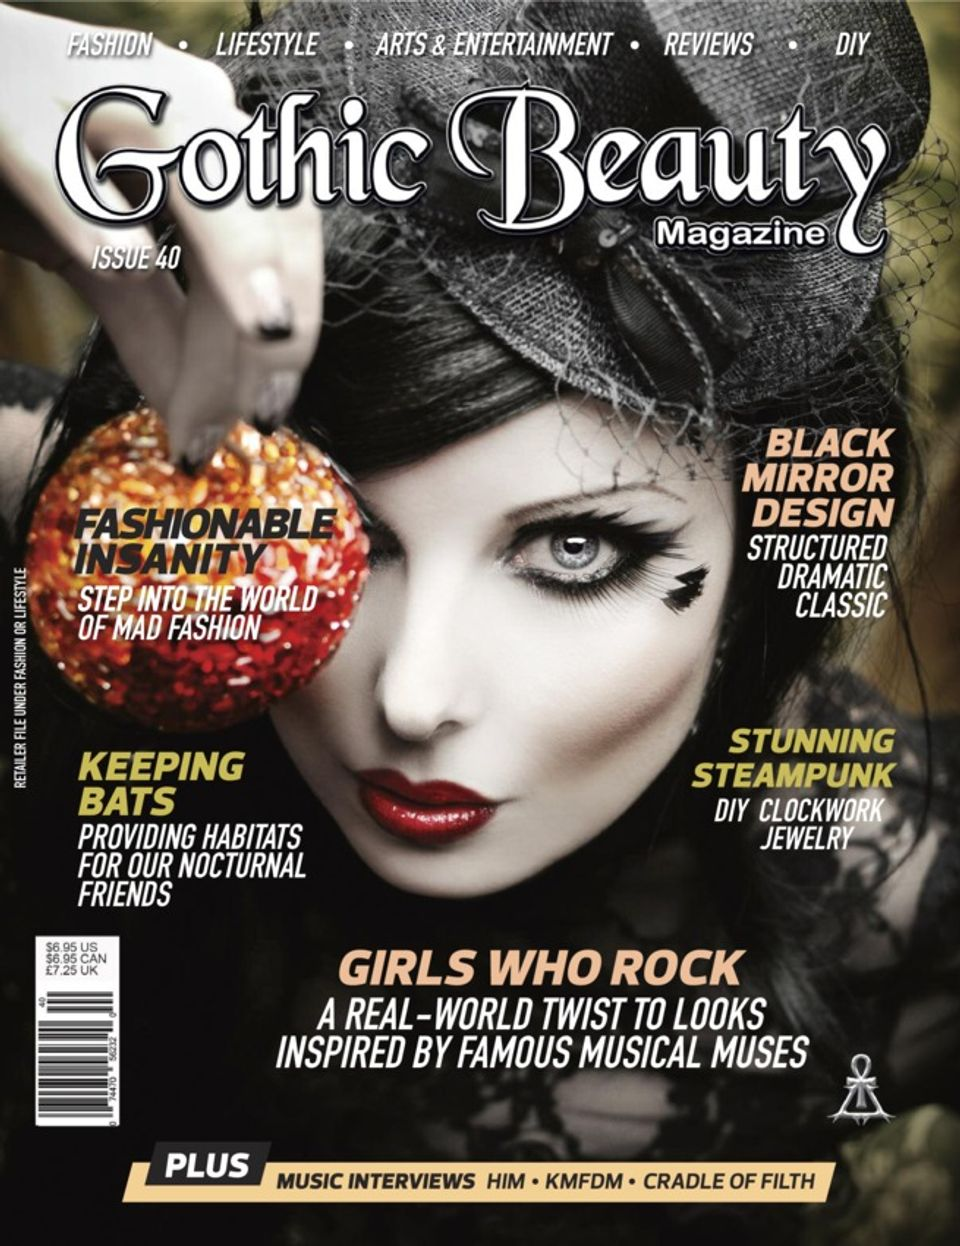 Gothic Beauty-Issue 40 Magazine - Get your Digital